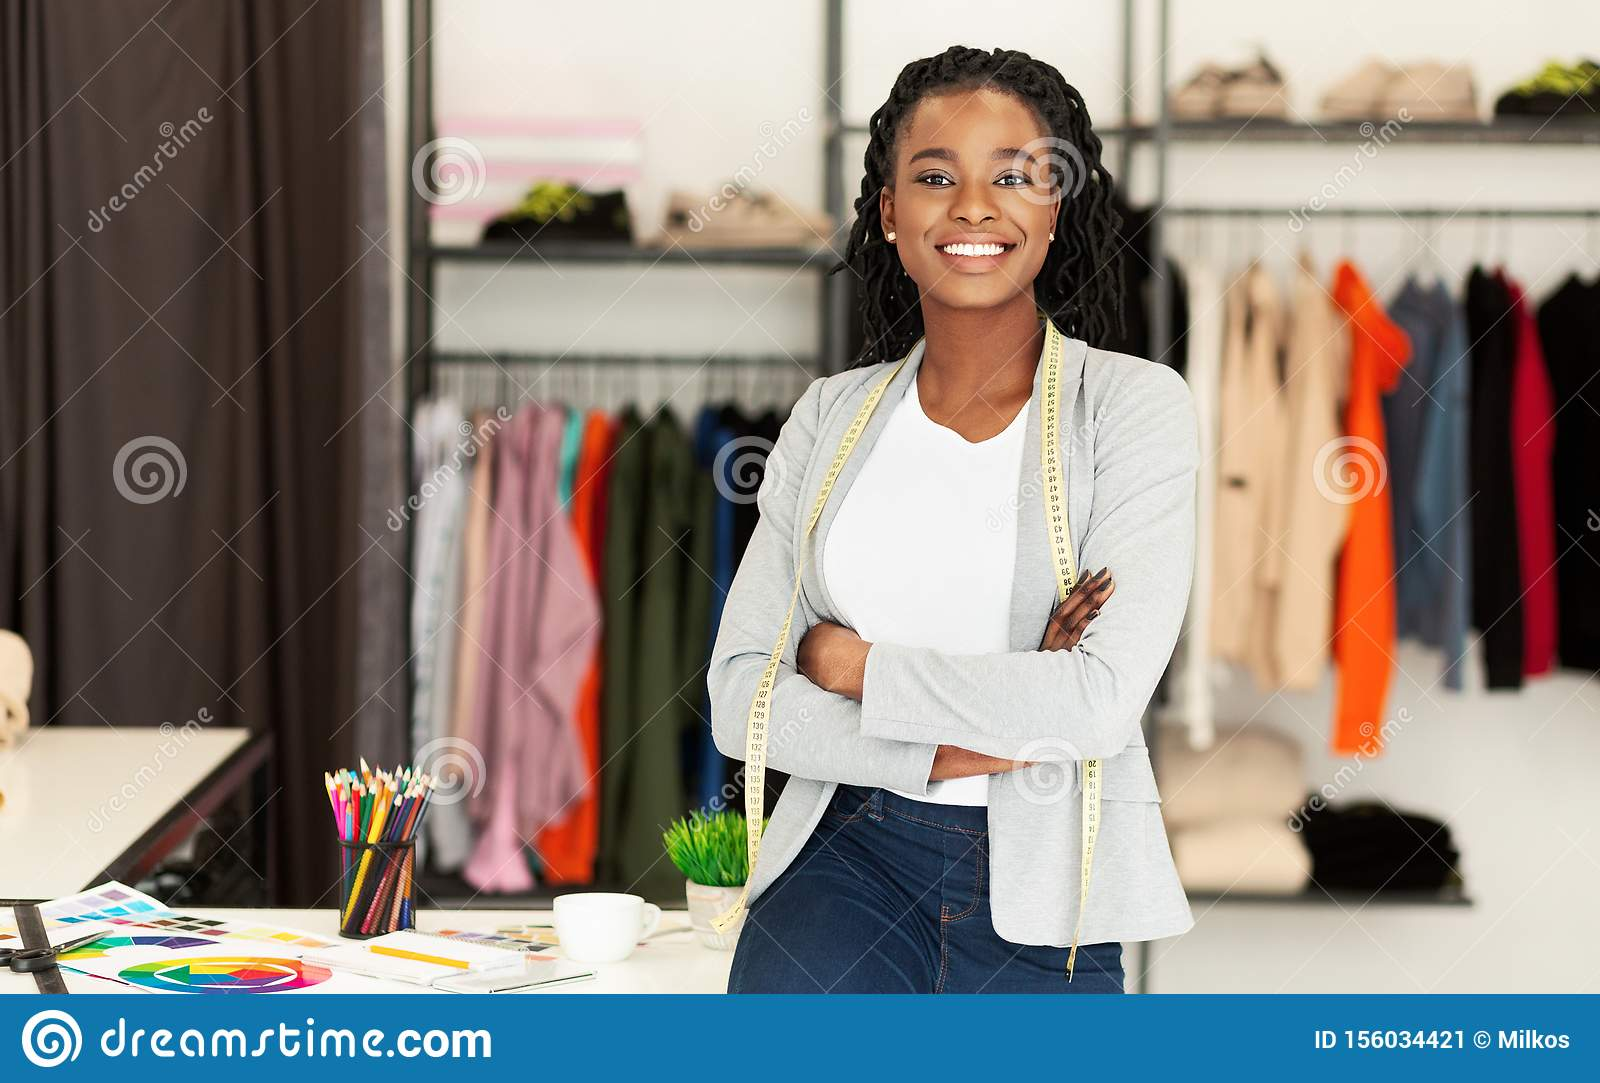 Successful African American Fashion Designer Smiling At Camera In Boutique Stock Image Image Of Indoor Design 156034421